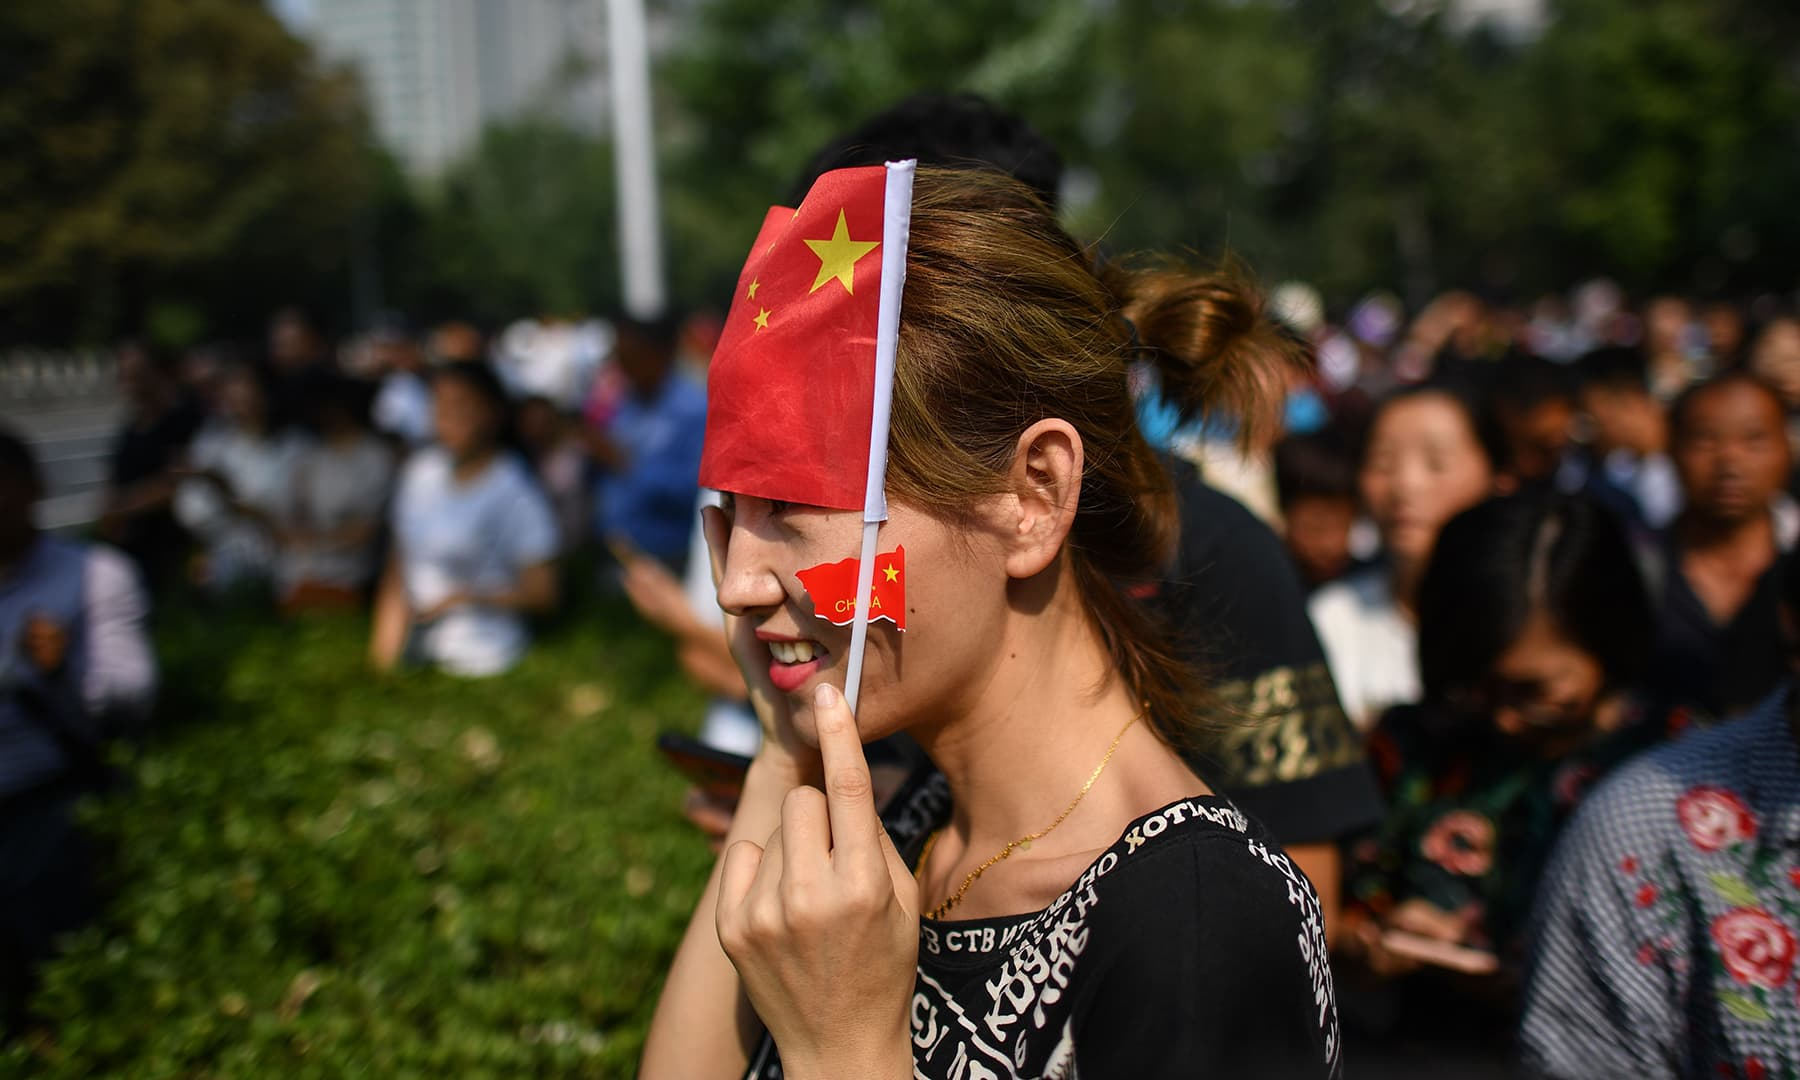 A citizen watches a military parade along the security perimeter established around the official ceremony in Tiananmen Square in Beijing. — AFP